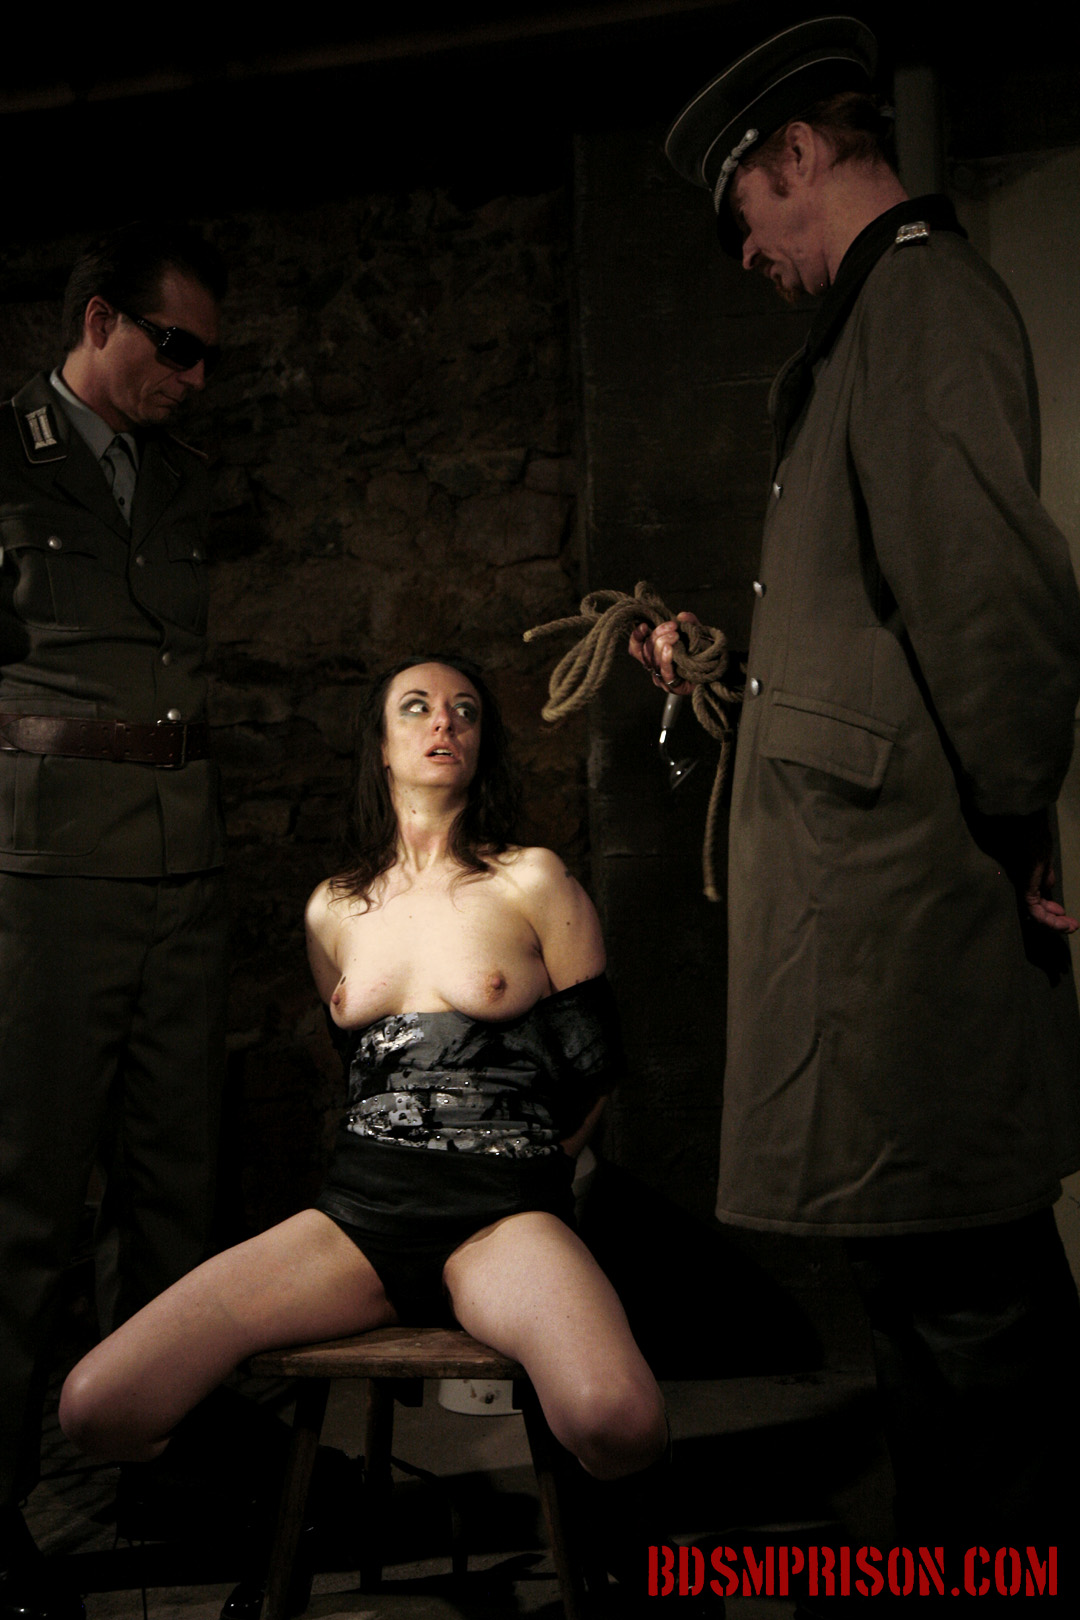 Nadja endures domination humiliation bondage with duct tape  nadja has been in prison for a few years where she is punish daily by two prison guards  she has earned sex slave traininig  she wakes up bound to a chair with a sack over her head in the baseme. Nadja has been in prison for a few years where she is punished daily by two prison guards. She has earned sex slave traininig. She wakes up bound to a chair with a sack over her head in the basement of our institute.